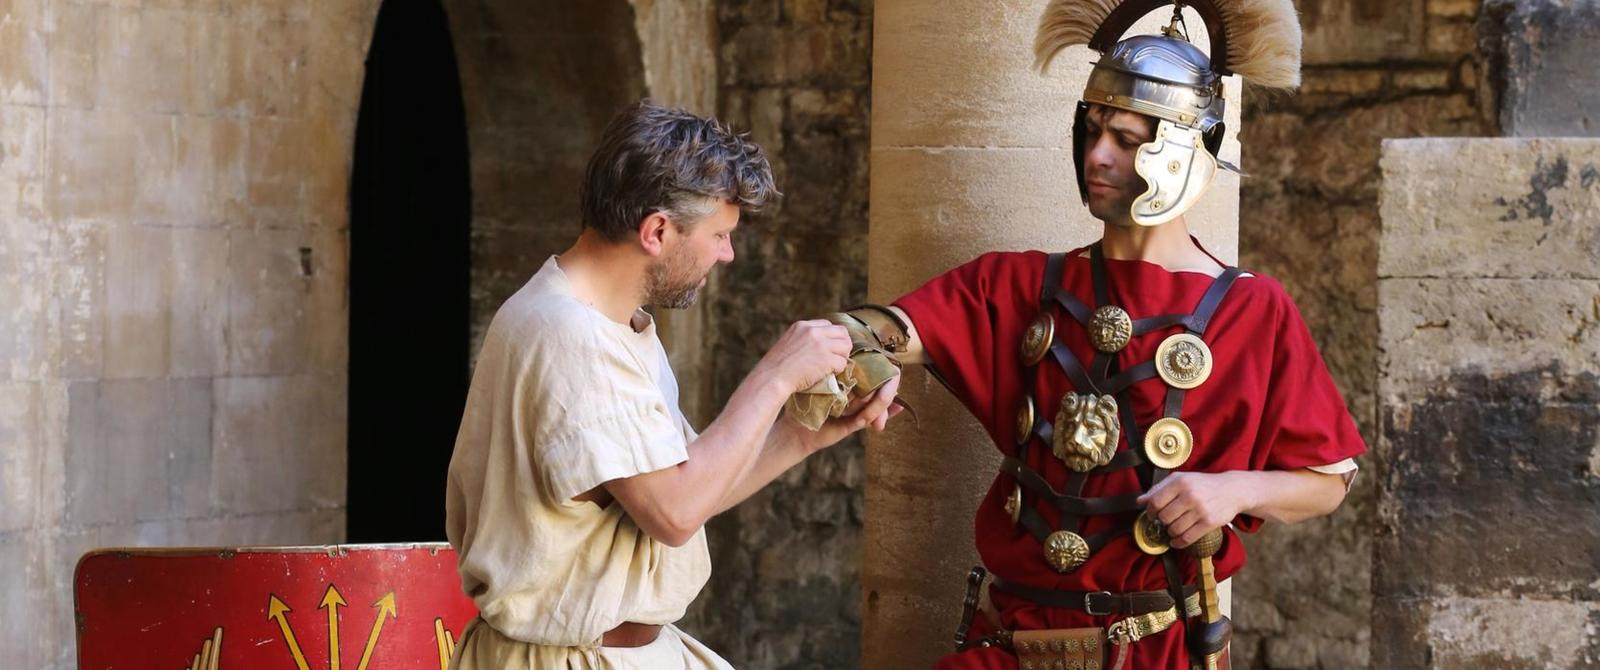 Image: Costumed characters at the Roman Baths